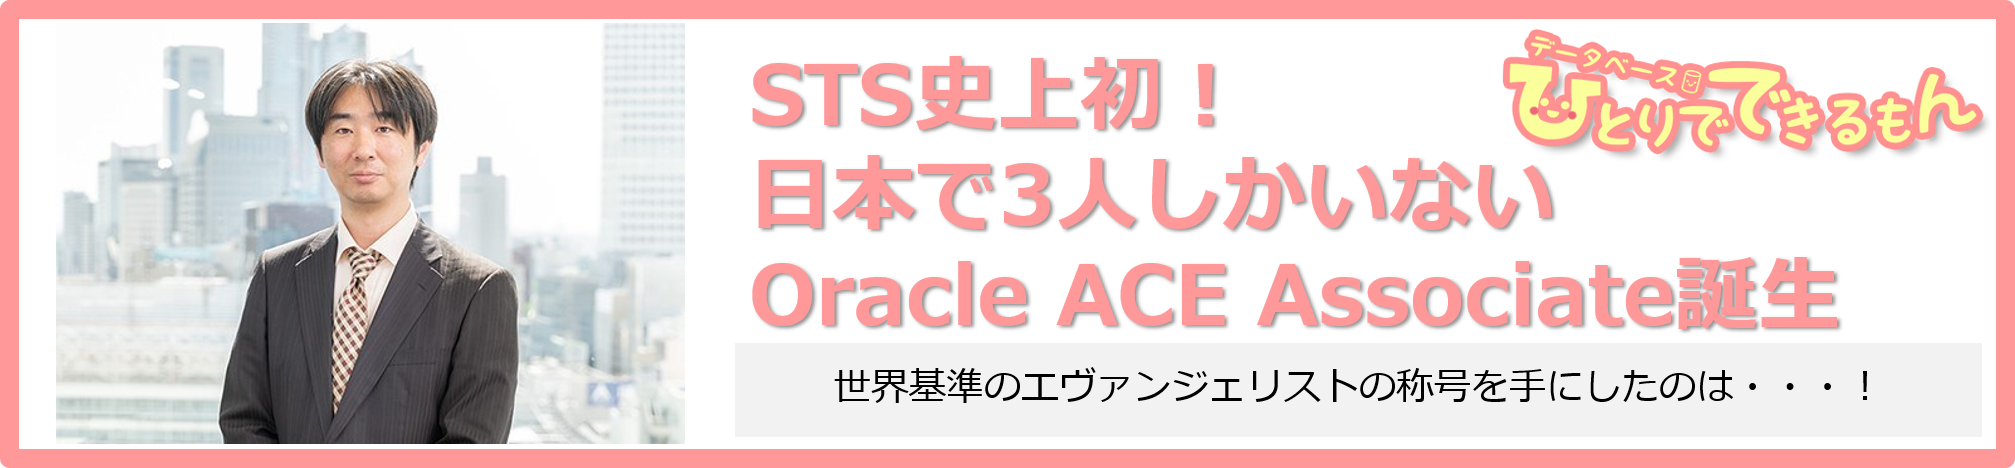 STS史上初!世界基準のOracle ACE Associate誕生!